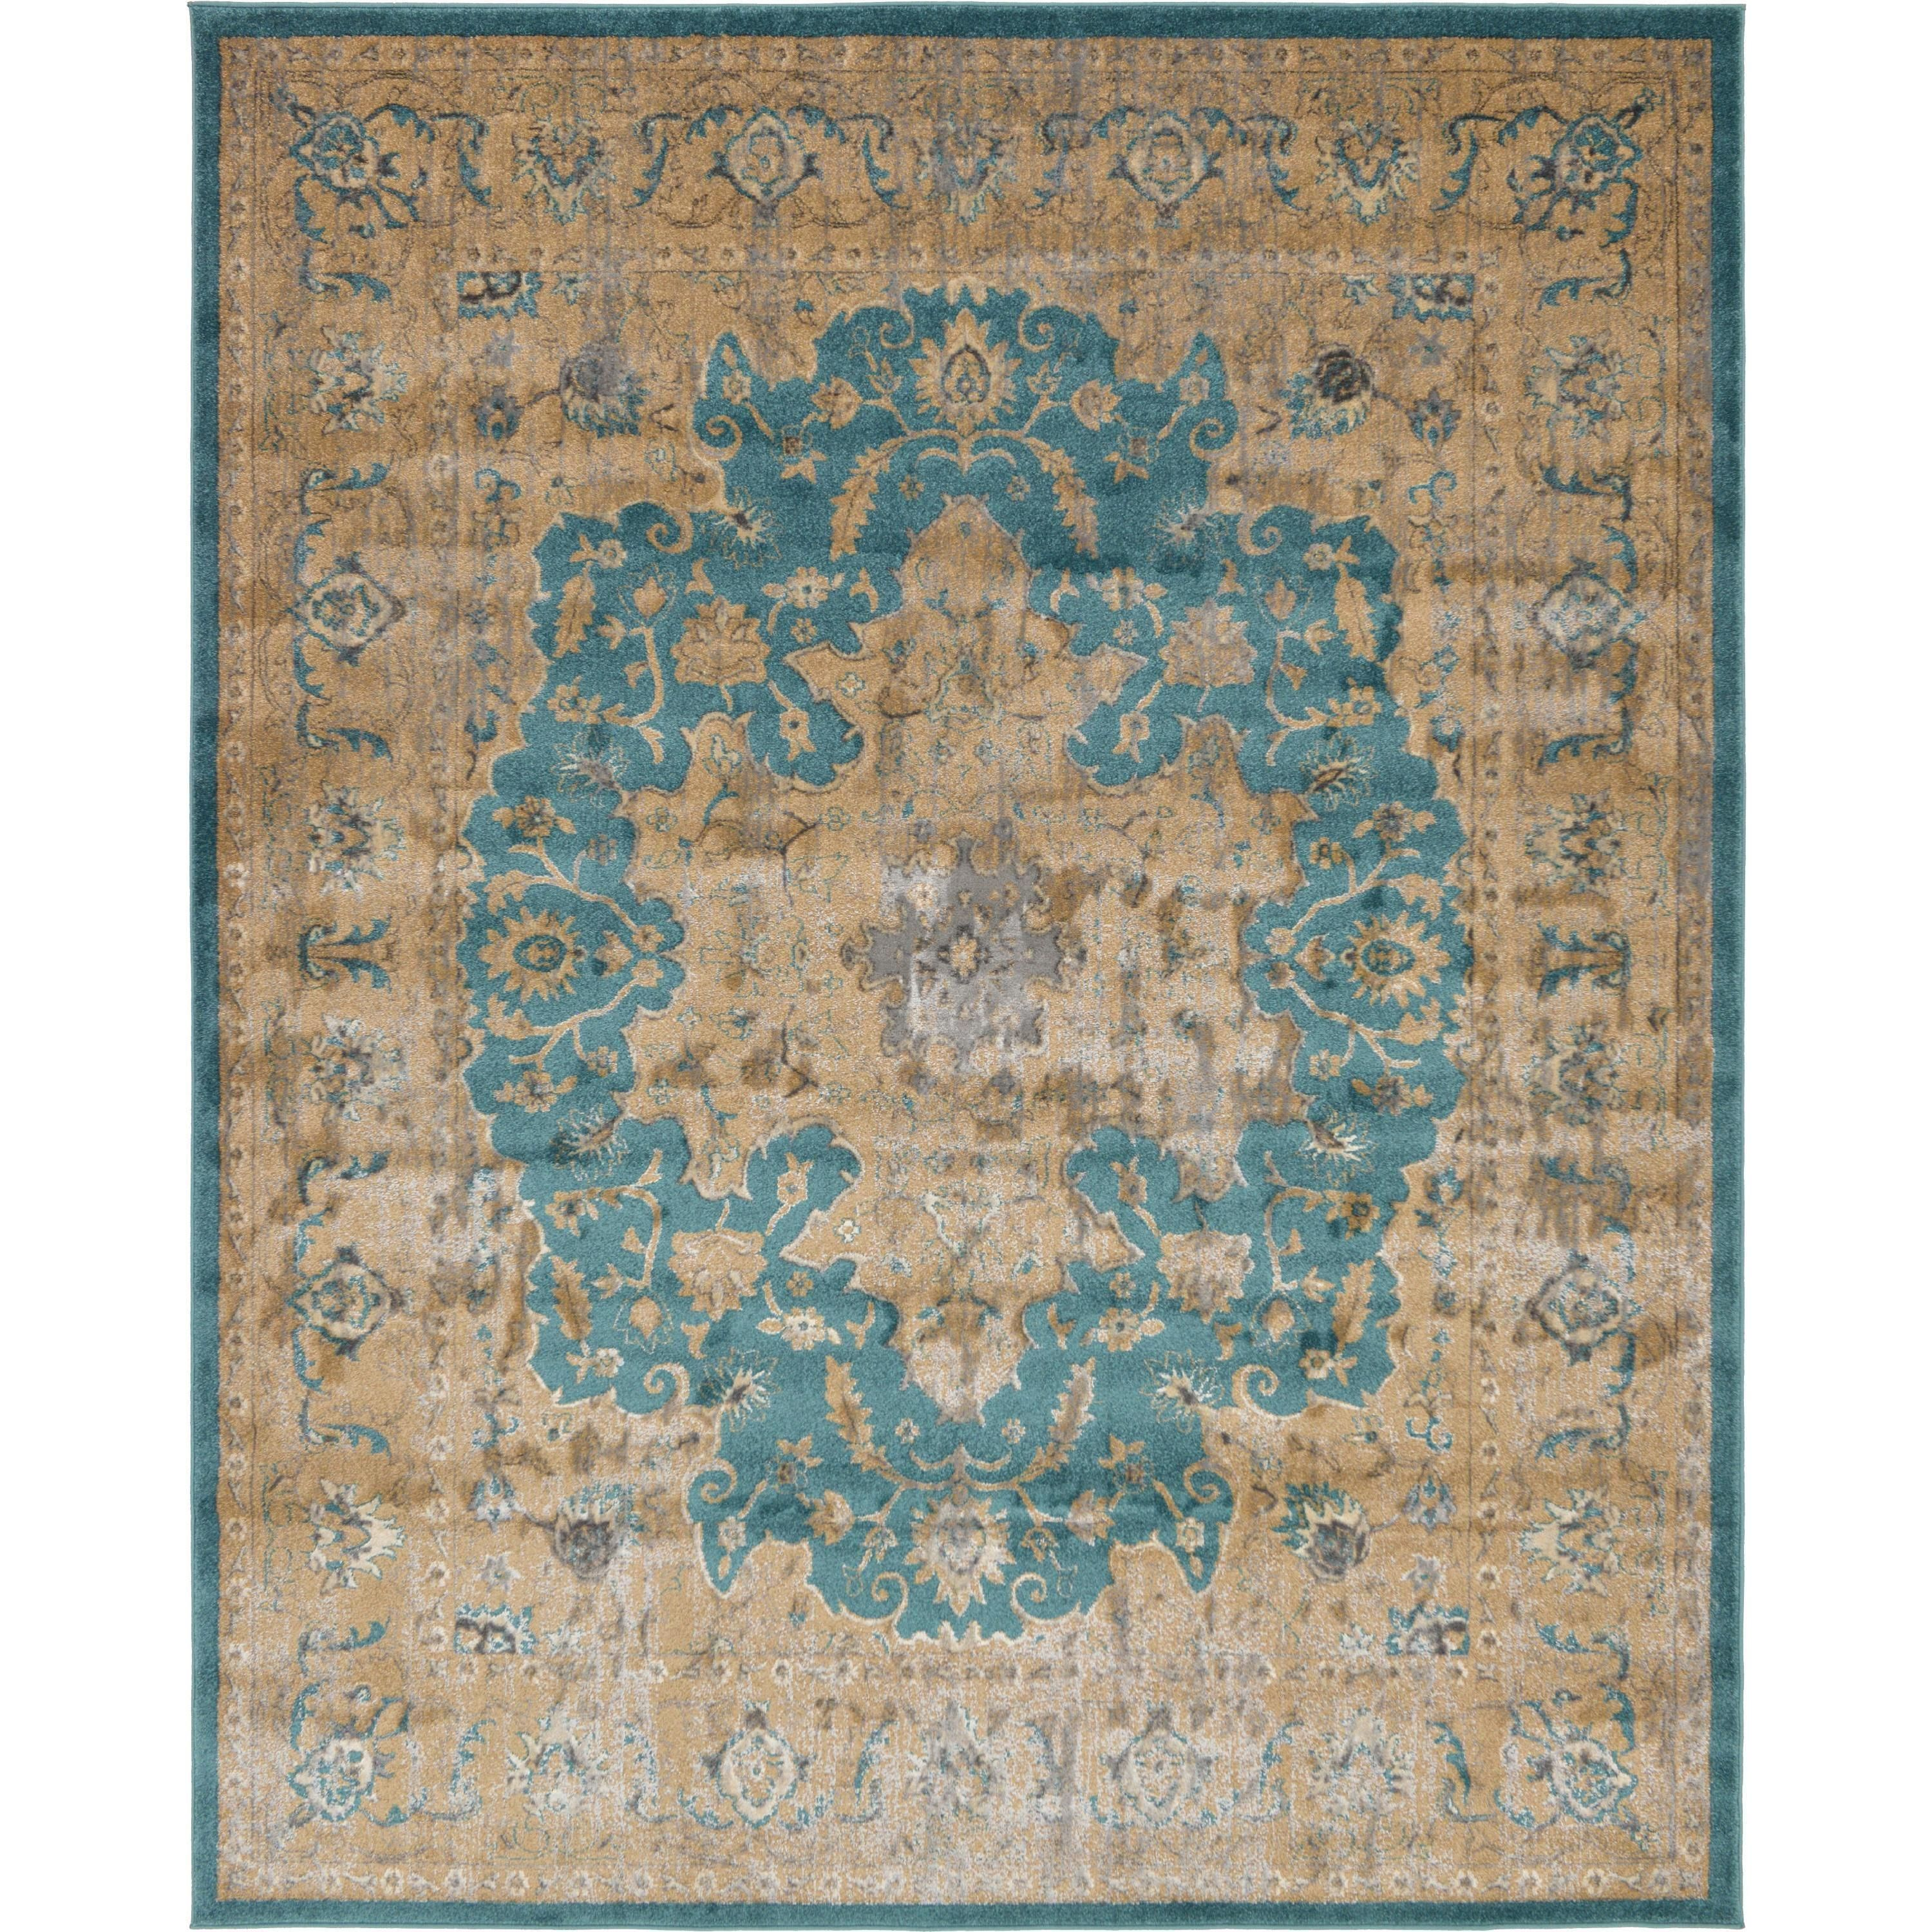 Teal Color Area Rugs Unique Stockholm Medallion Teal Area Rug 8 X 10 Teal 10